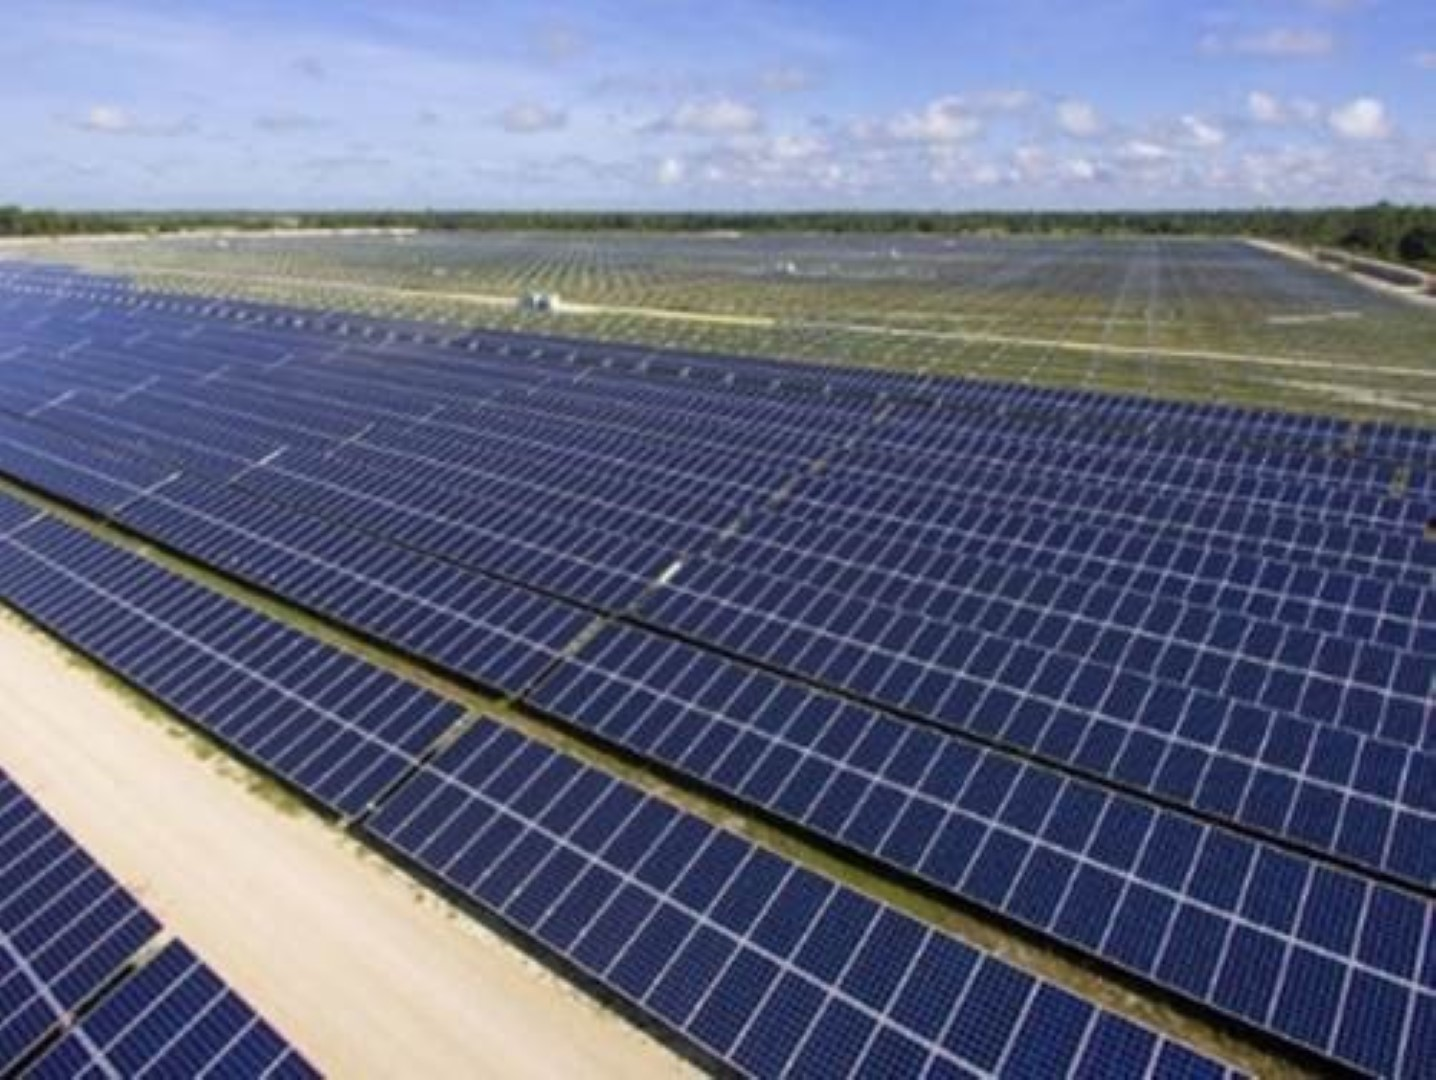 Fpl To Add Another 1 500 Megawatts Of Solar Over The Next